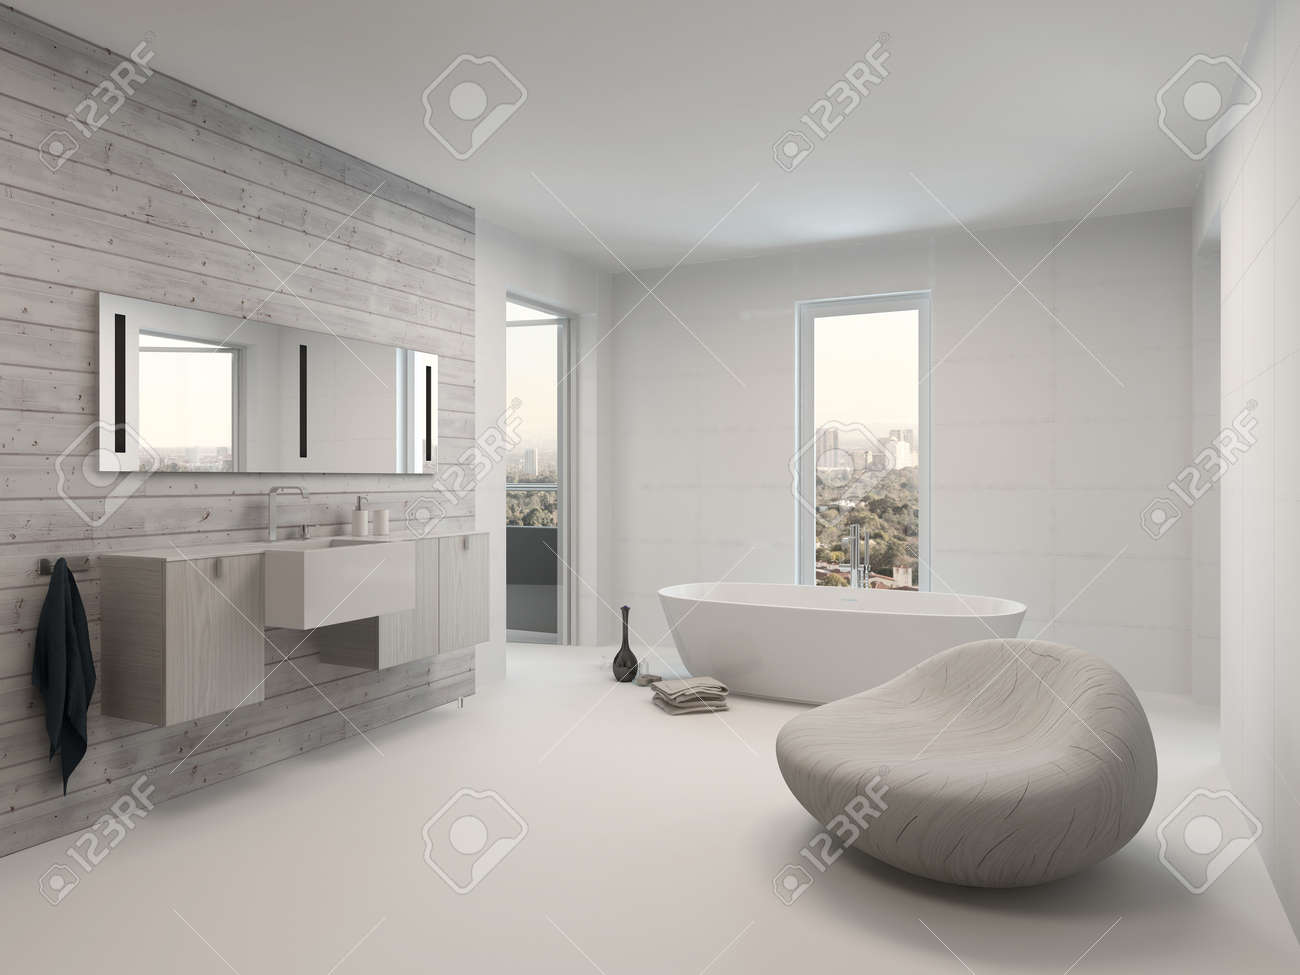 Pure White Modern Luxury Bathroom Interior Stock Photo Picture And Royalty Free Image Image 28772347